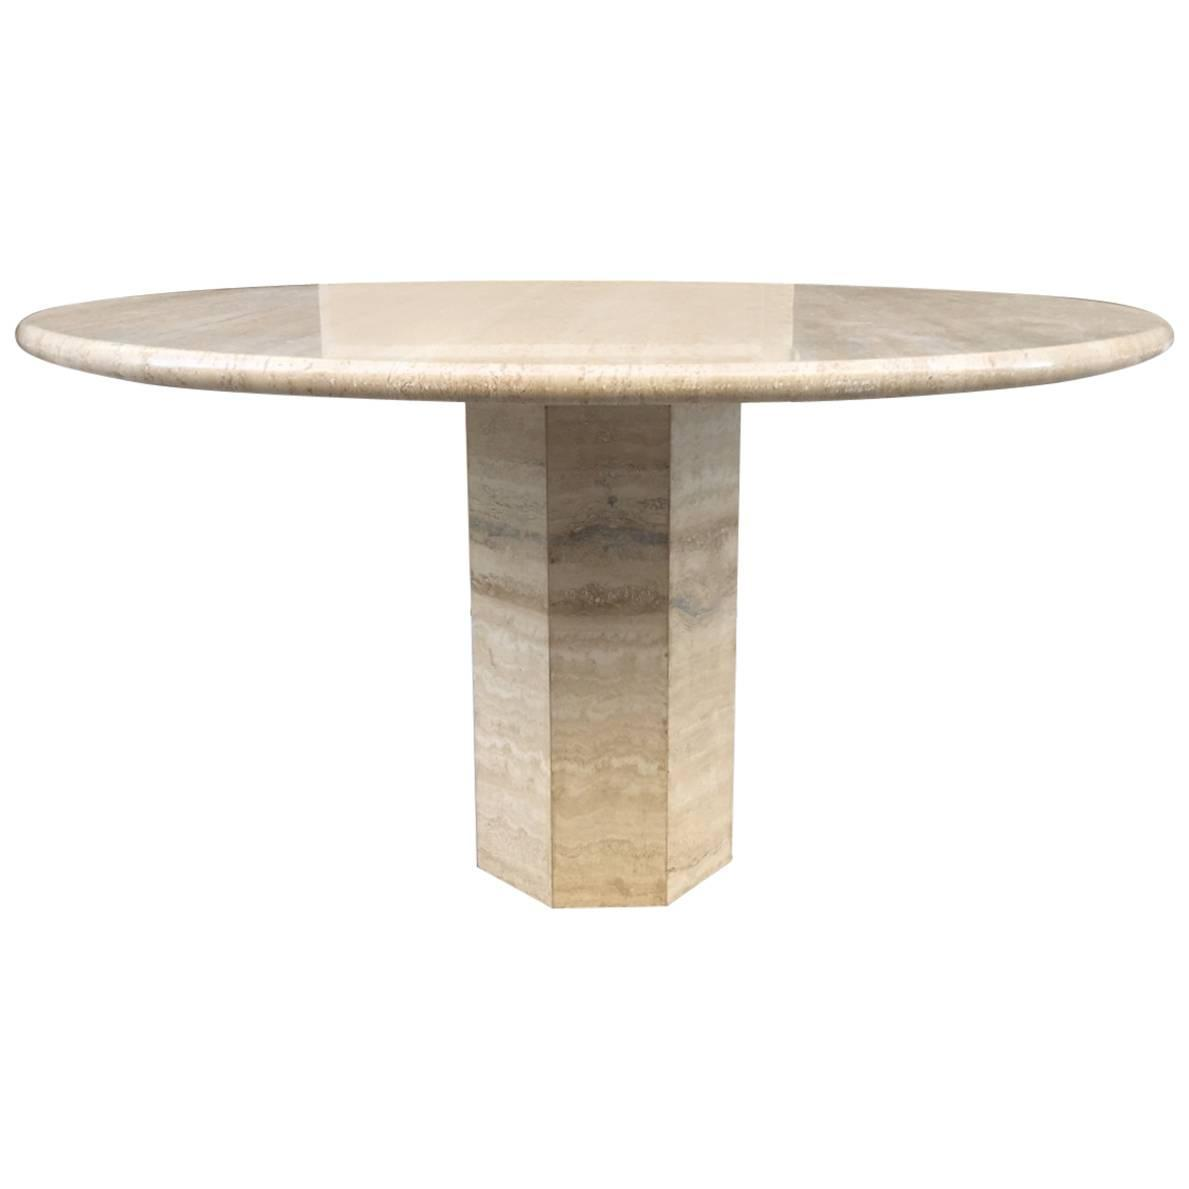 Italian travertine dining table at 1stdibs for Italian dining table